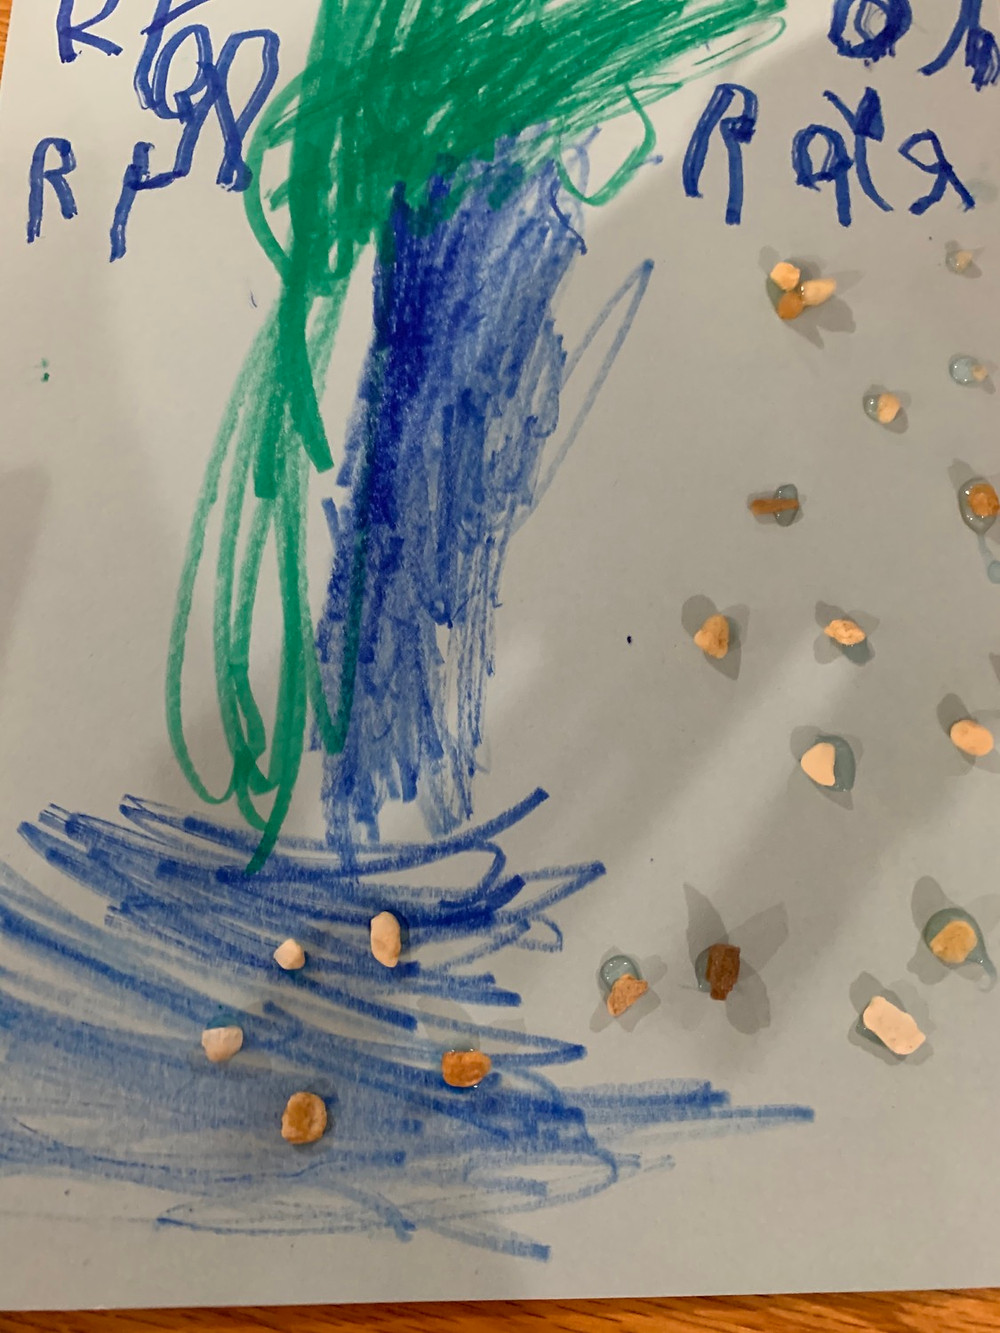 Waterfall art by a 4 year old